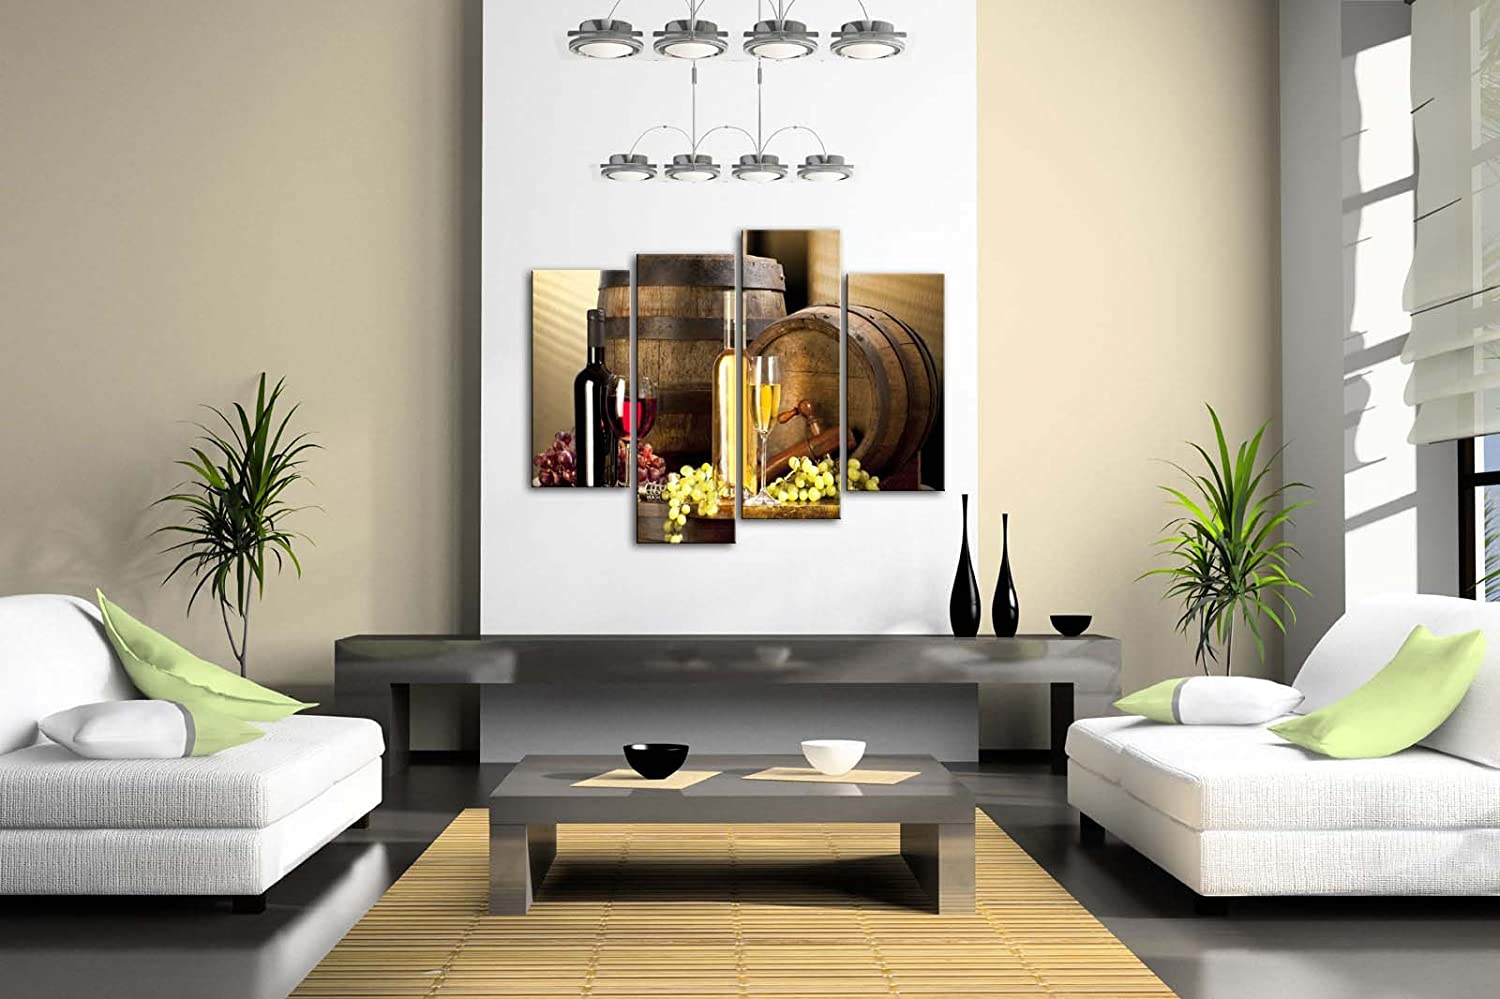 Amazon various wine with grape wall art for kitchen painting amazon various wine with grape wall art for kitchen painting pictures print on canvas food the picture for home modern decoration posters prints amipublicfo Choice Image